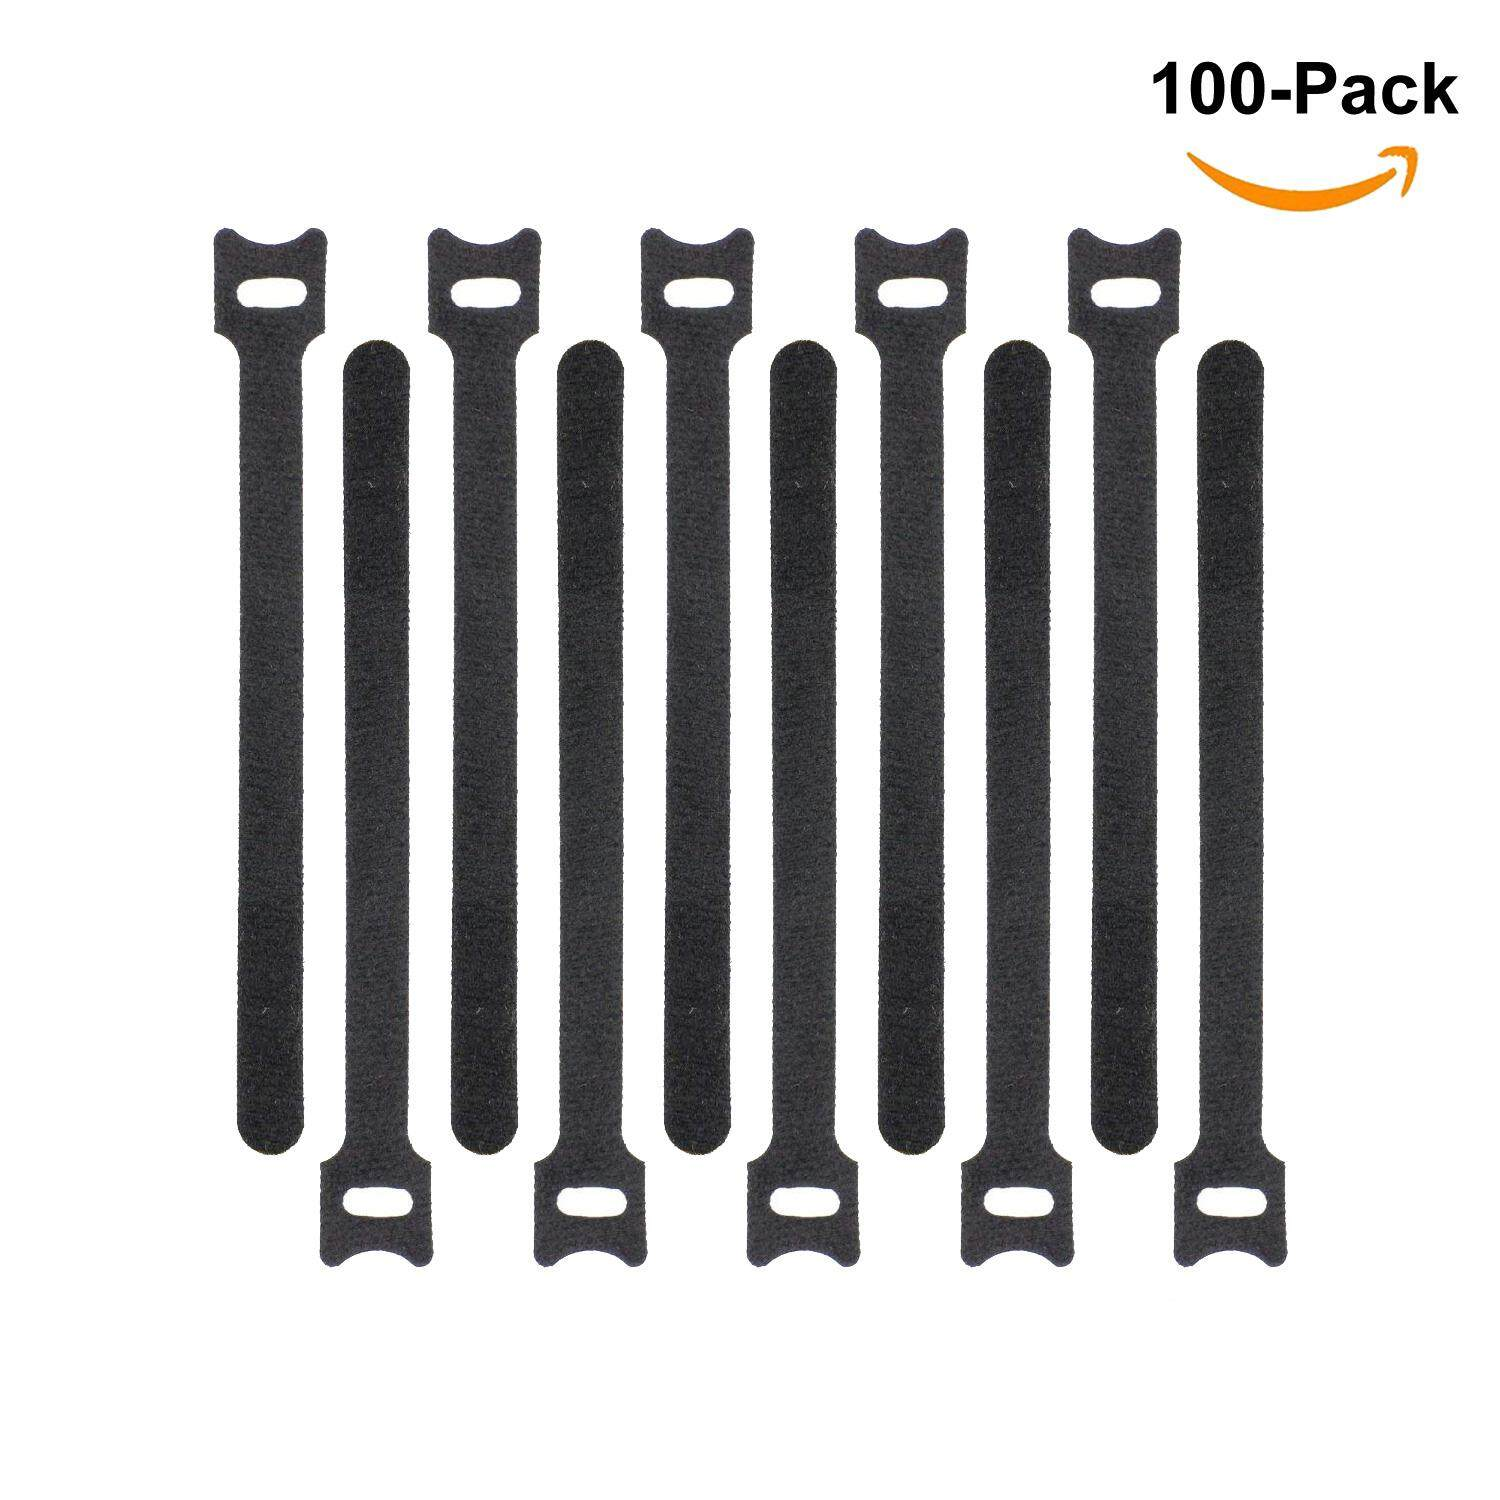 100pcs Reusable Fastening Cable Ties Velcro Magic Tape Wrap Hook and Loop Cord Wire Organizer Straps for PC TV Electronics Wire Management